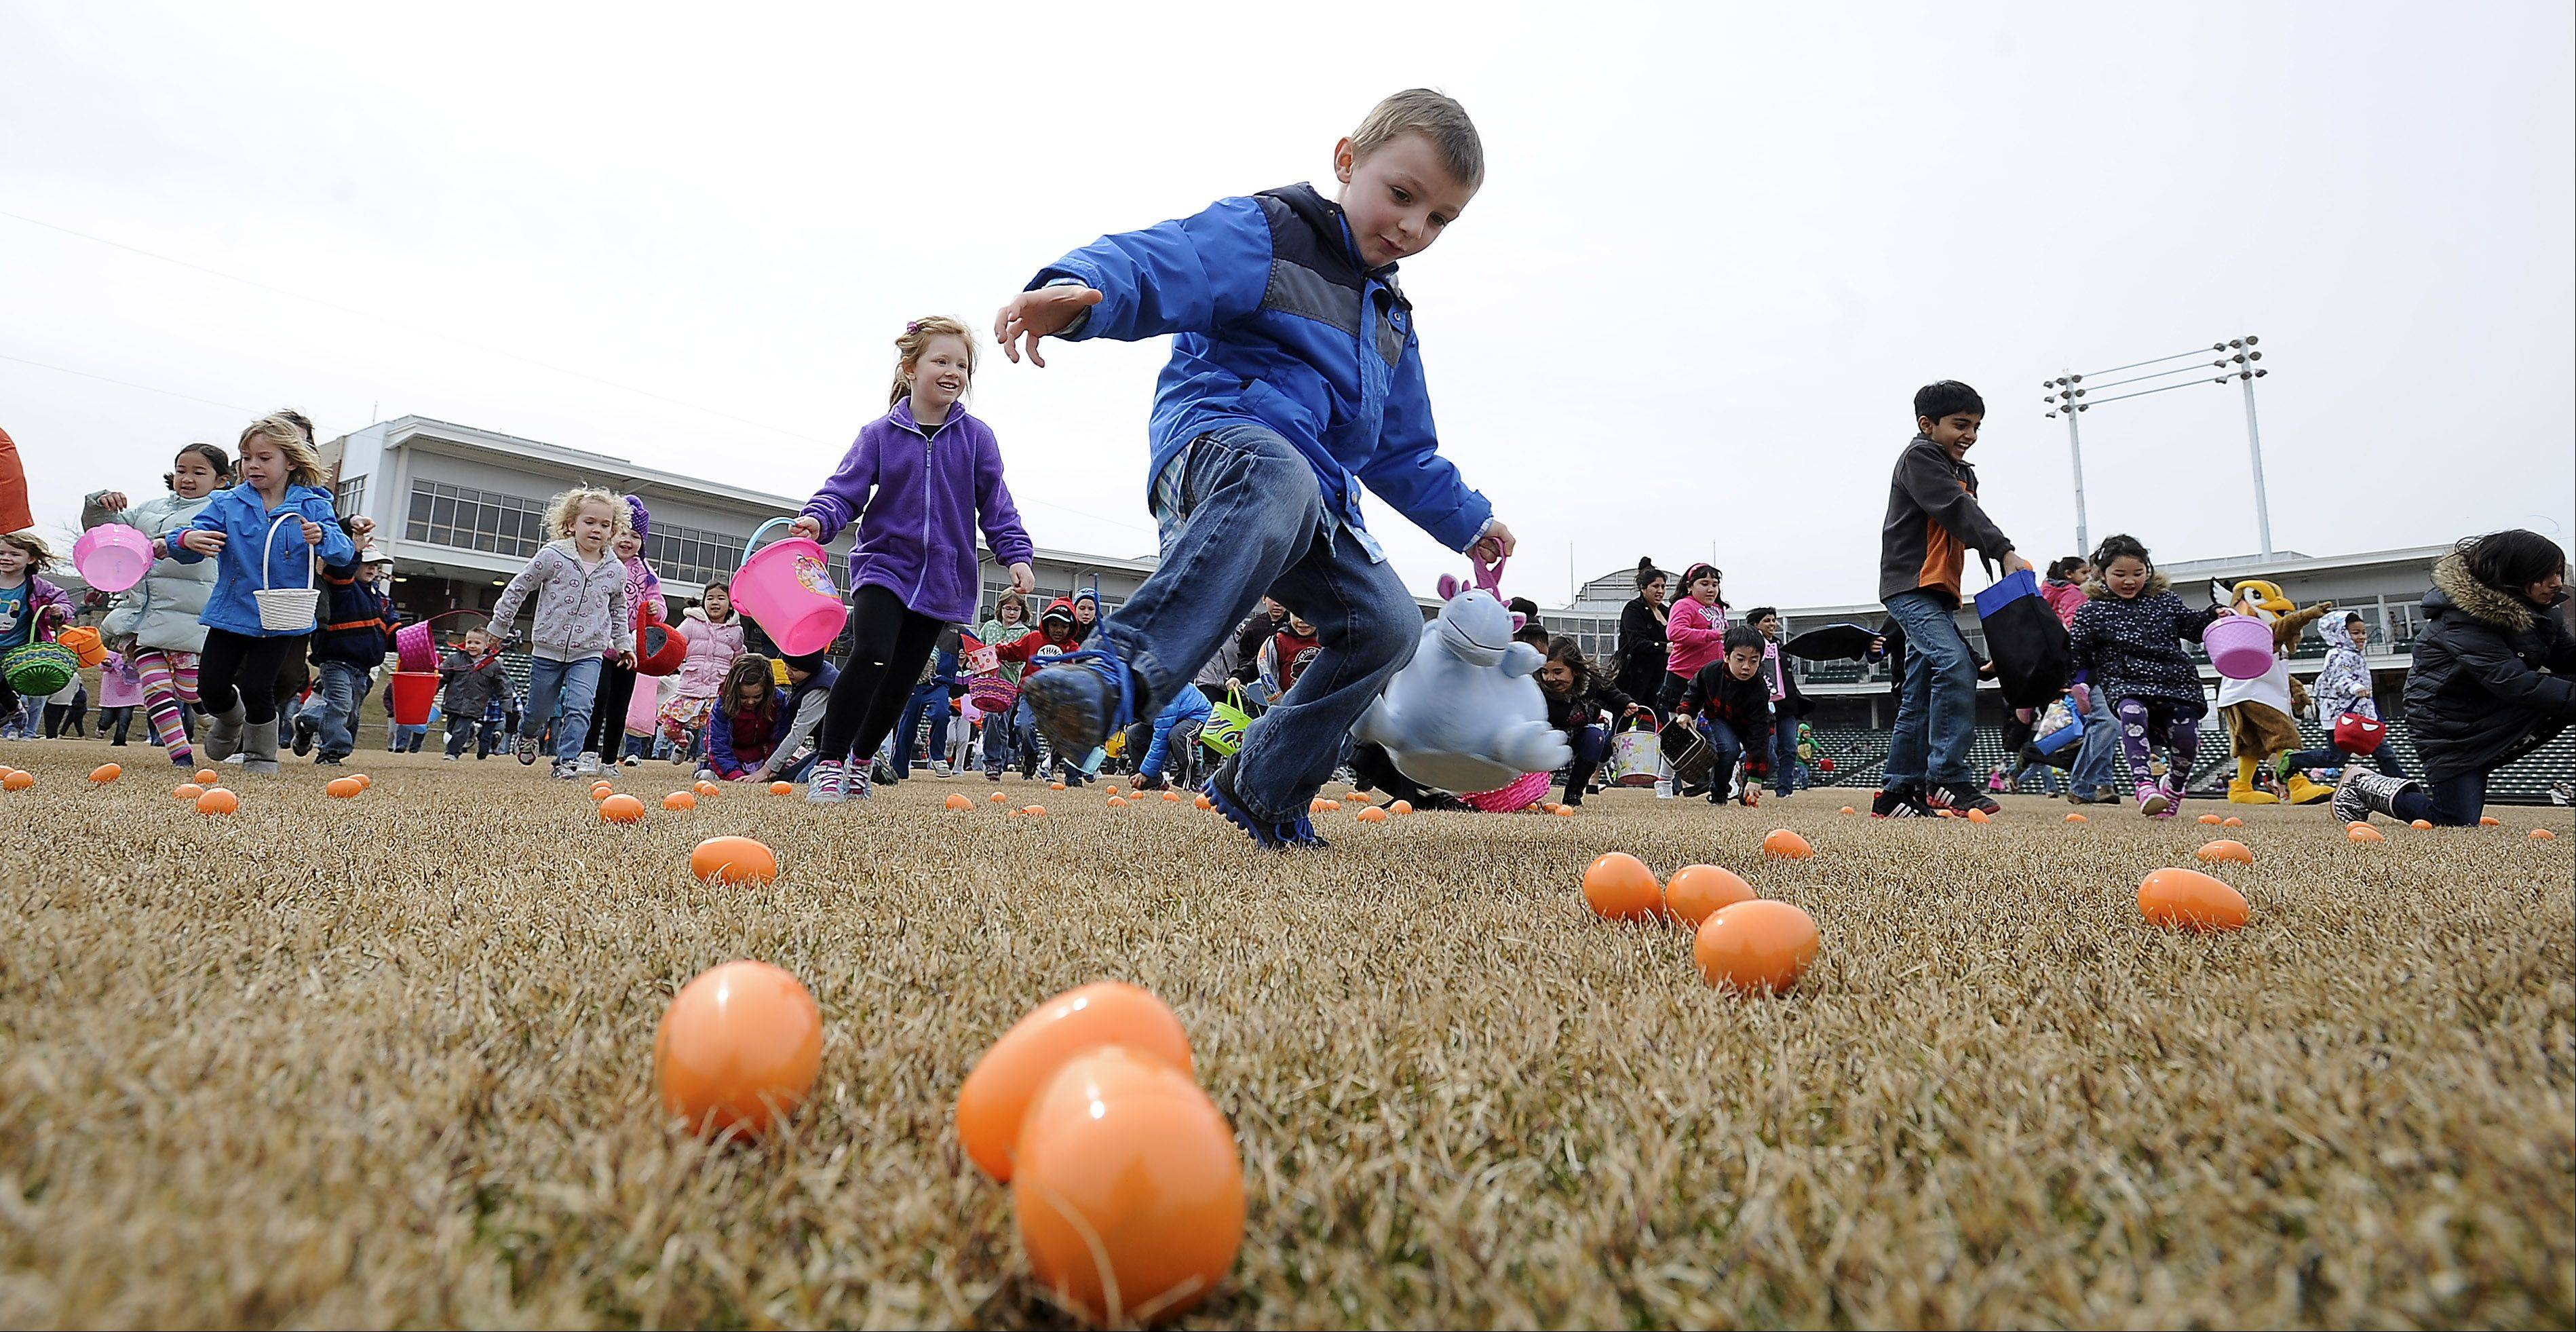 Logan Entzminger,6, of Bartlett puts on the brakes as he rushes to scoop up as many Easter eggs as possible, he got only six in the mad rush at the Schaumburg Boomers 2nd annual Easter egg hunt on Saturday.